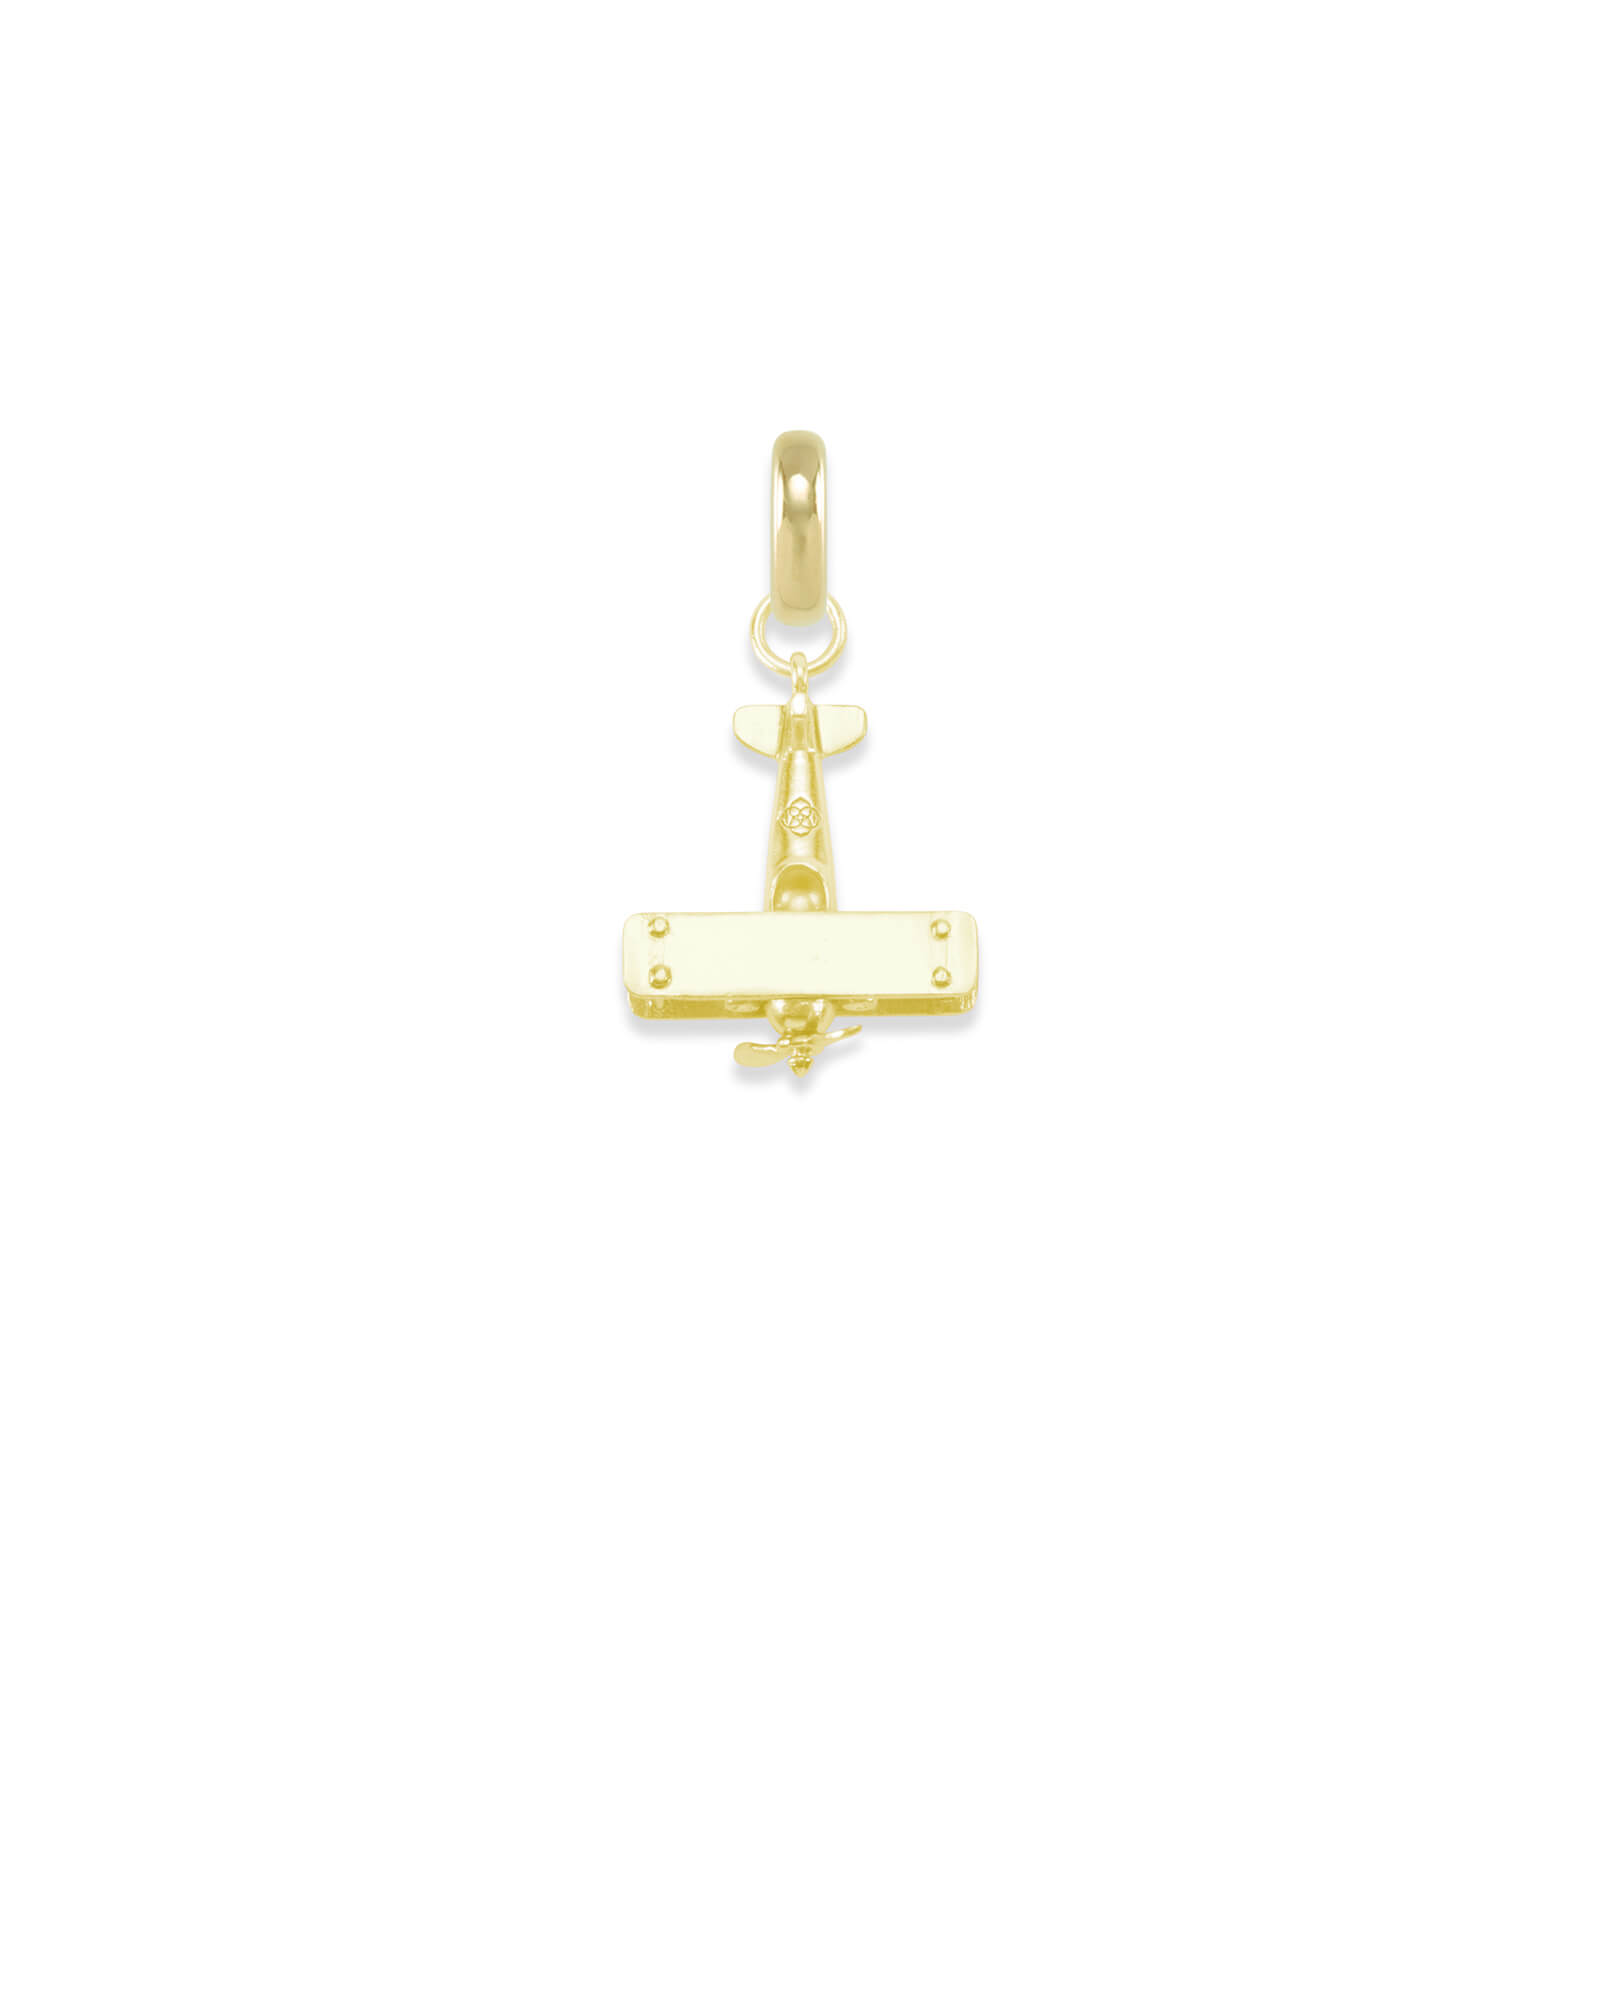 North Carolina Airplane Charm in Gold